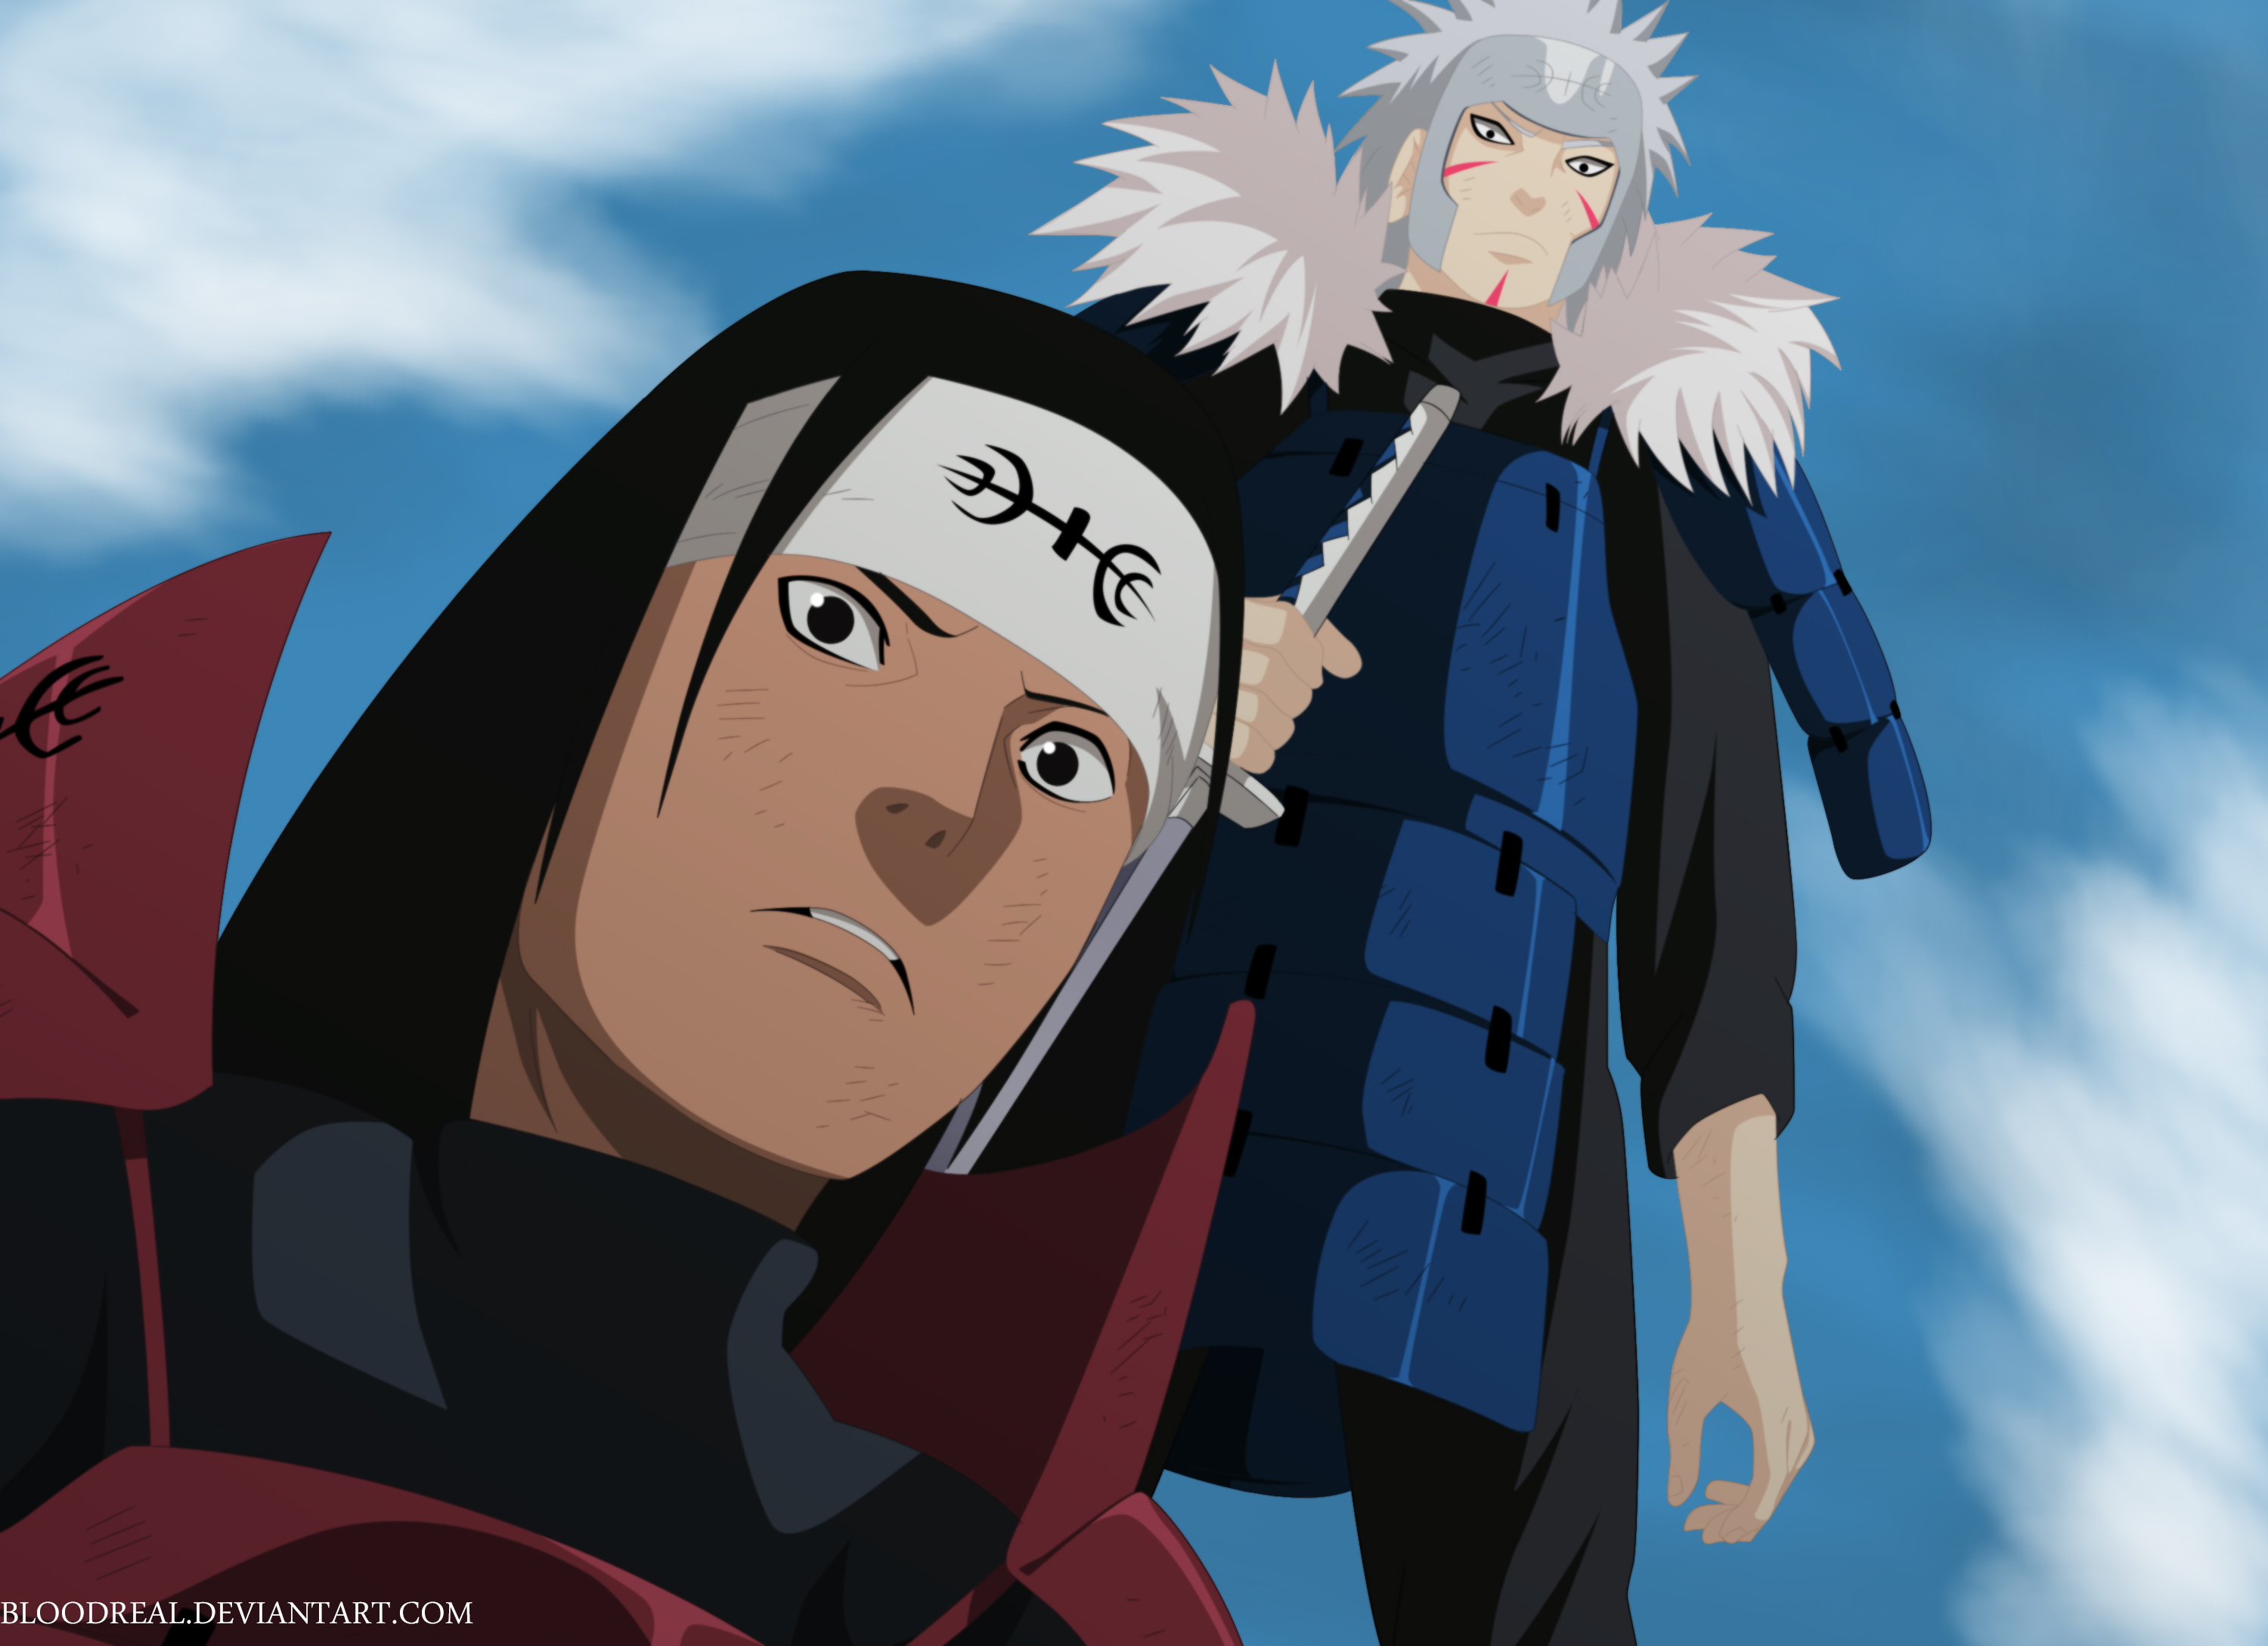 Naruto Manga 624 - Hashirama and Tobirama Senju by Advance996